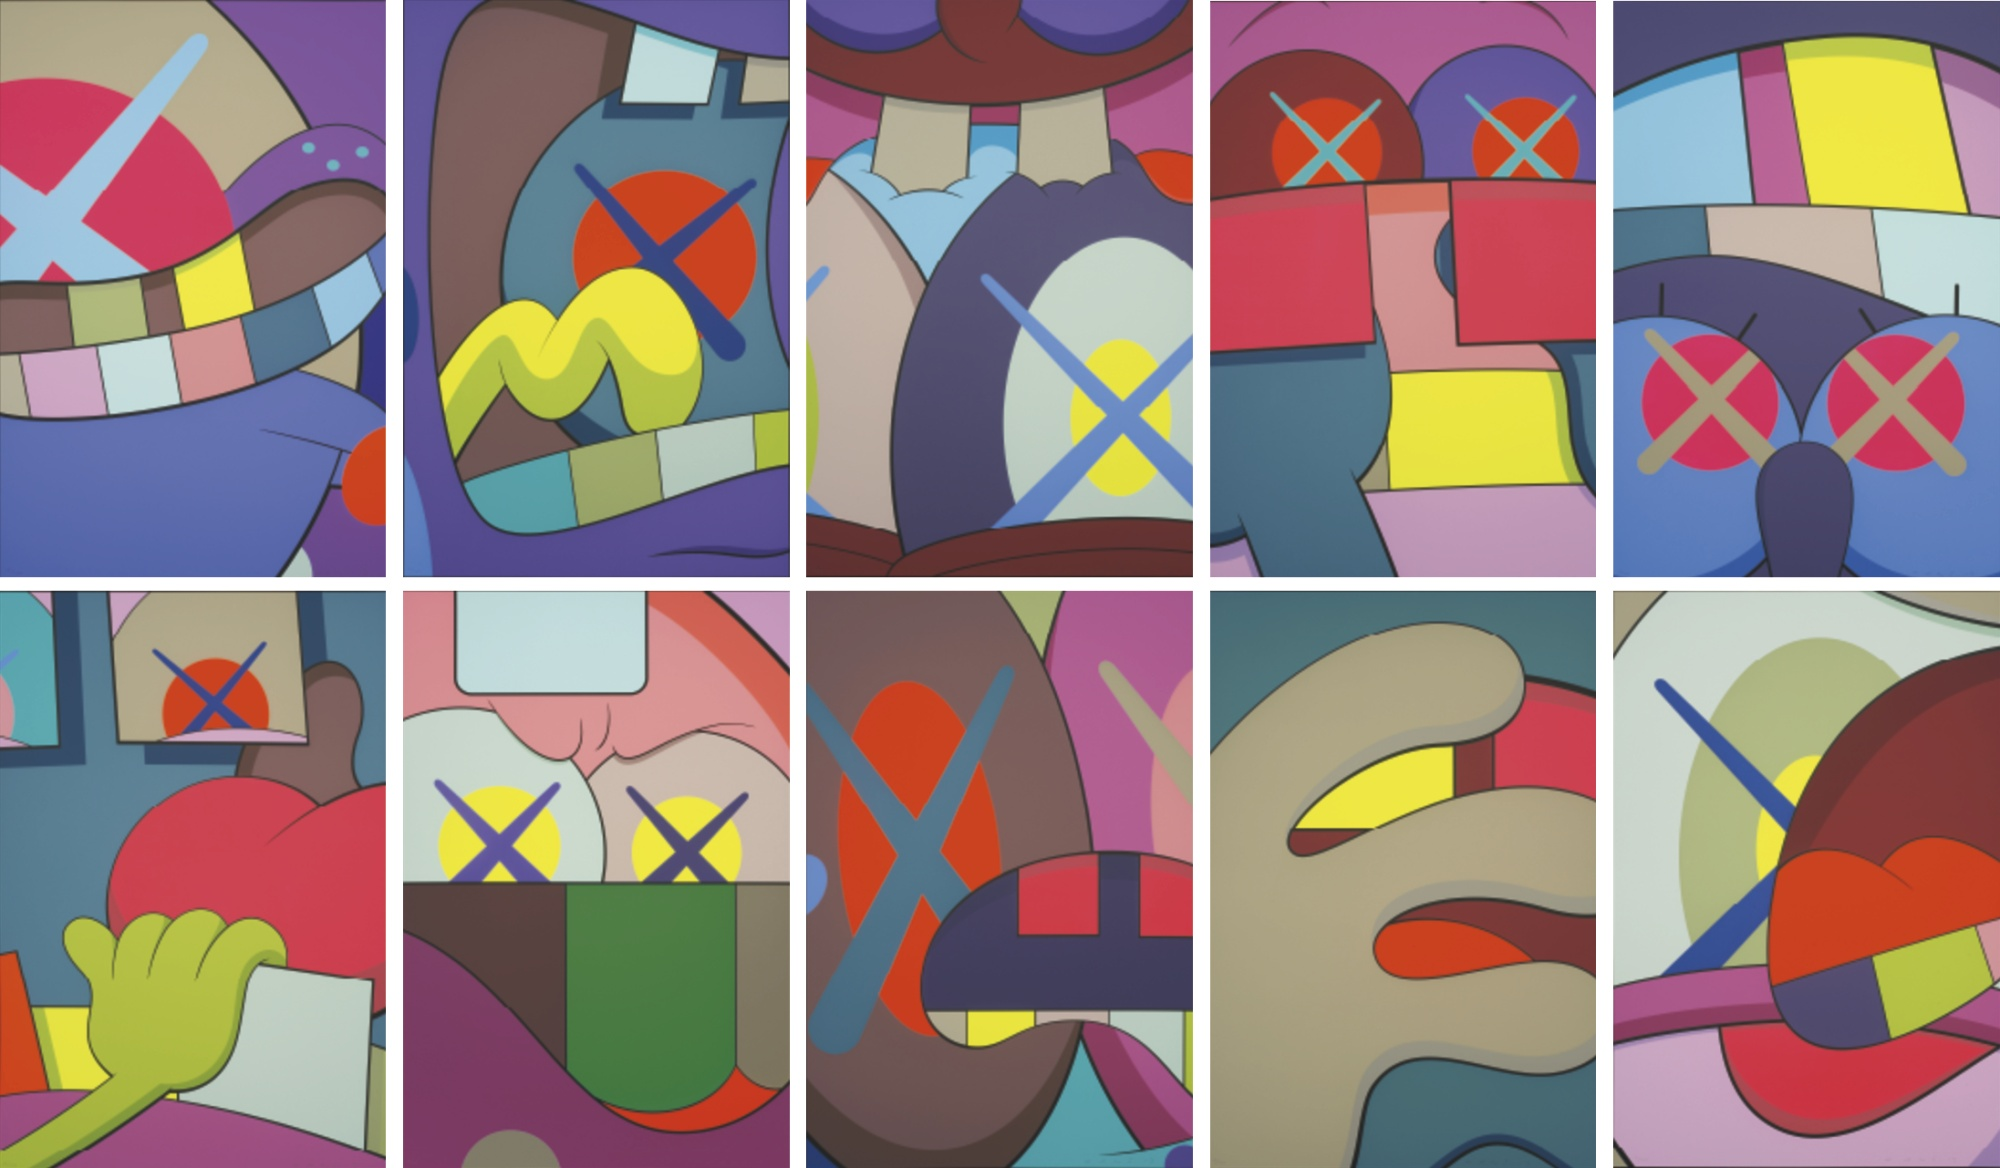 Ups and Downs by KAWS